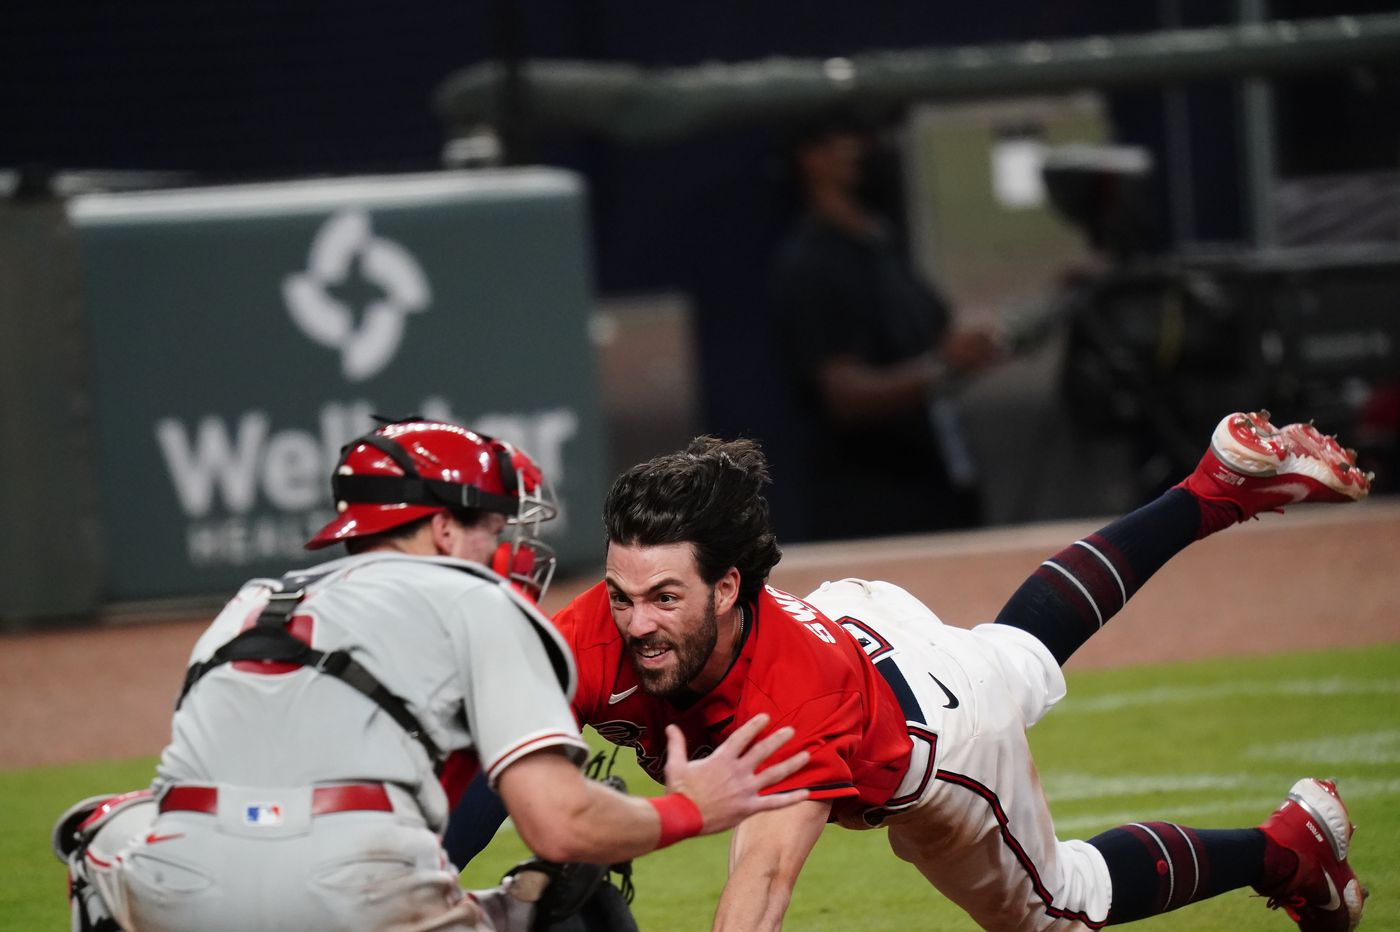 Andrew Knapp's tag broke the rules, Braves manager Brian Snitker says | Extra Innings